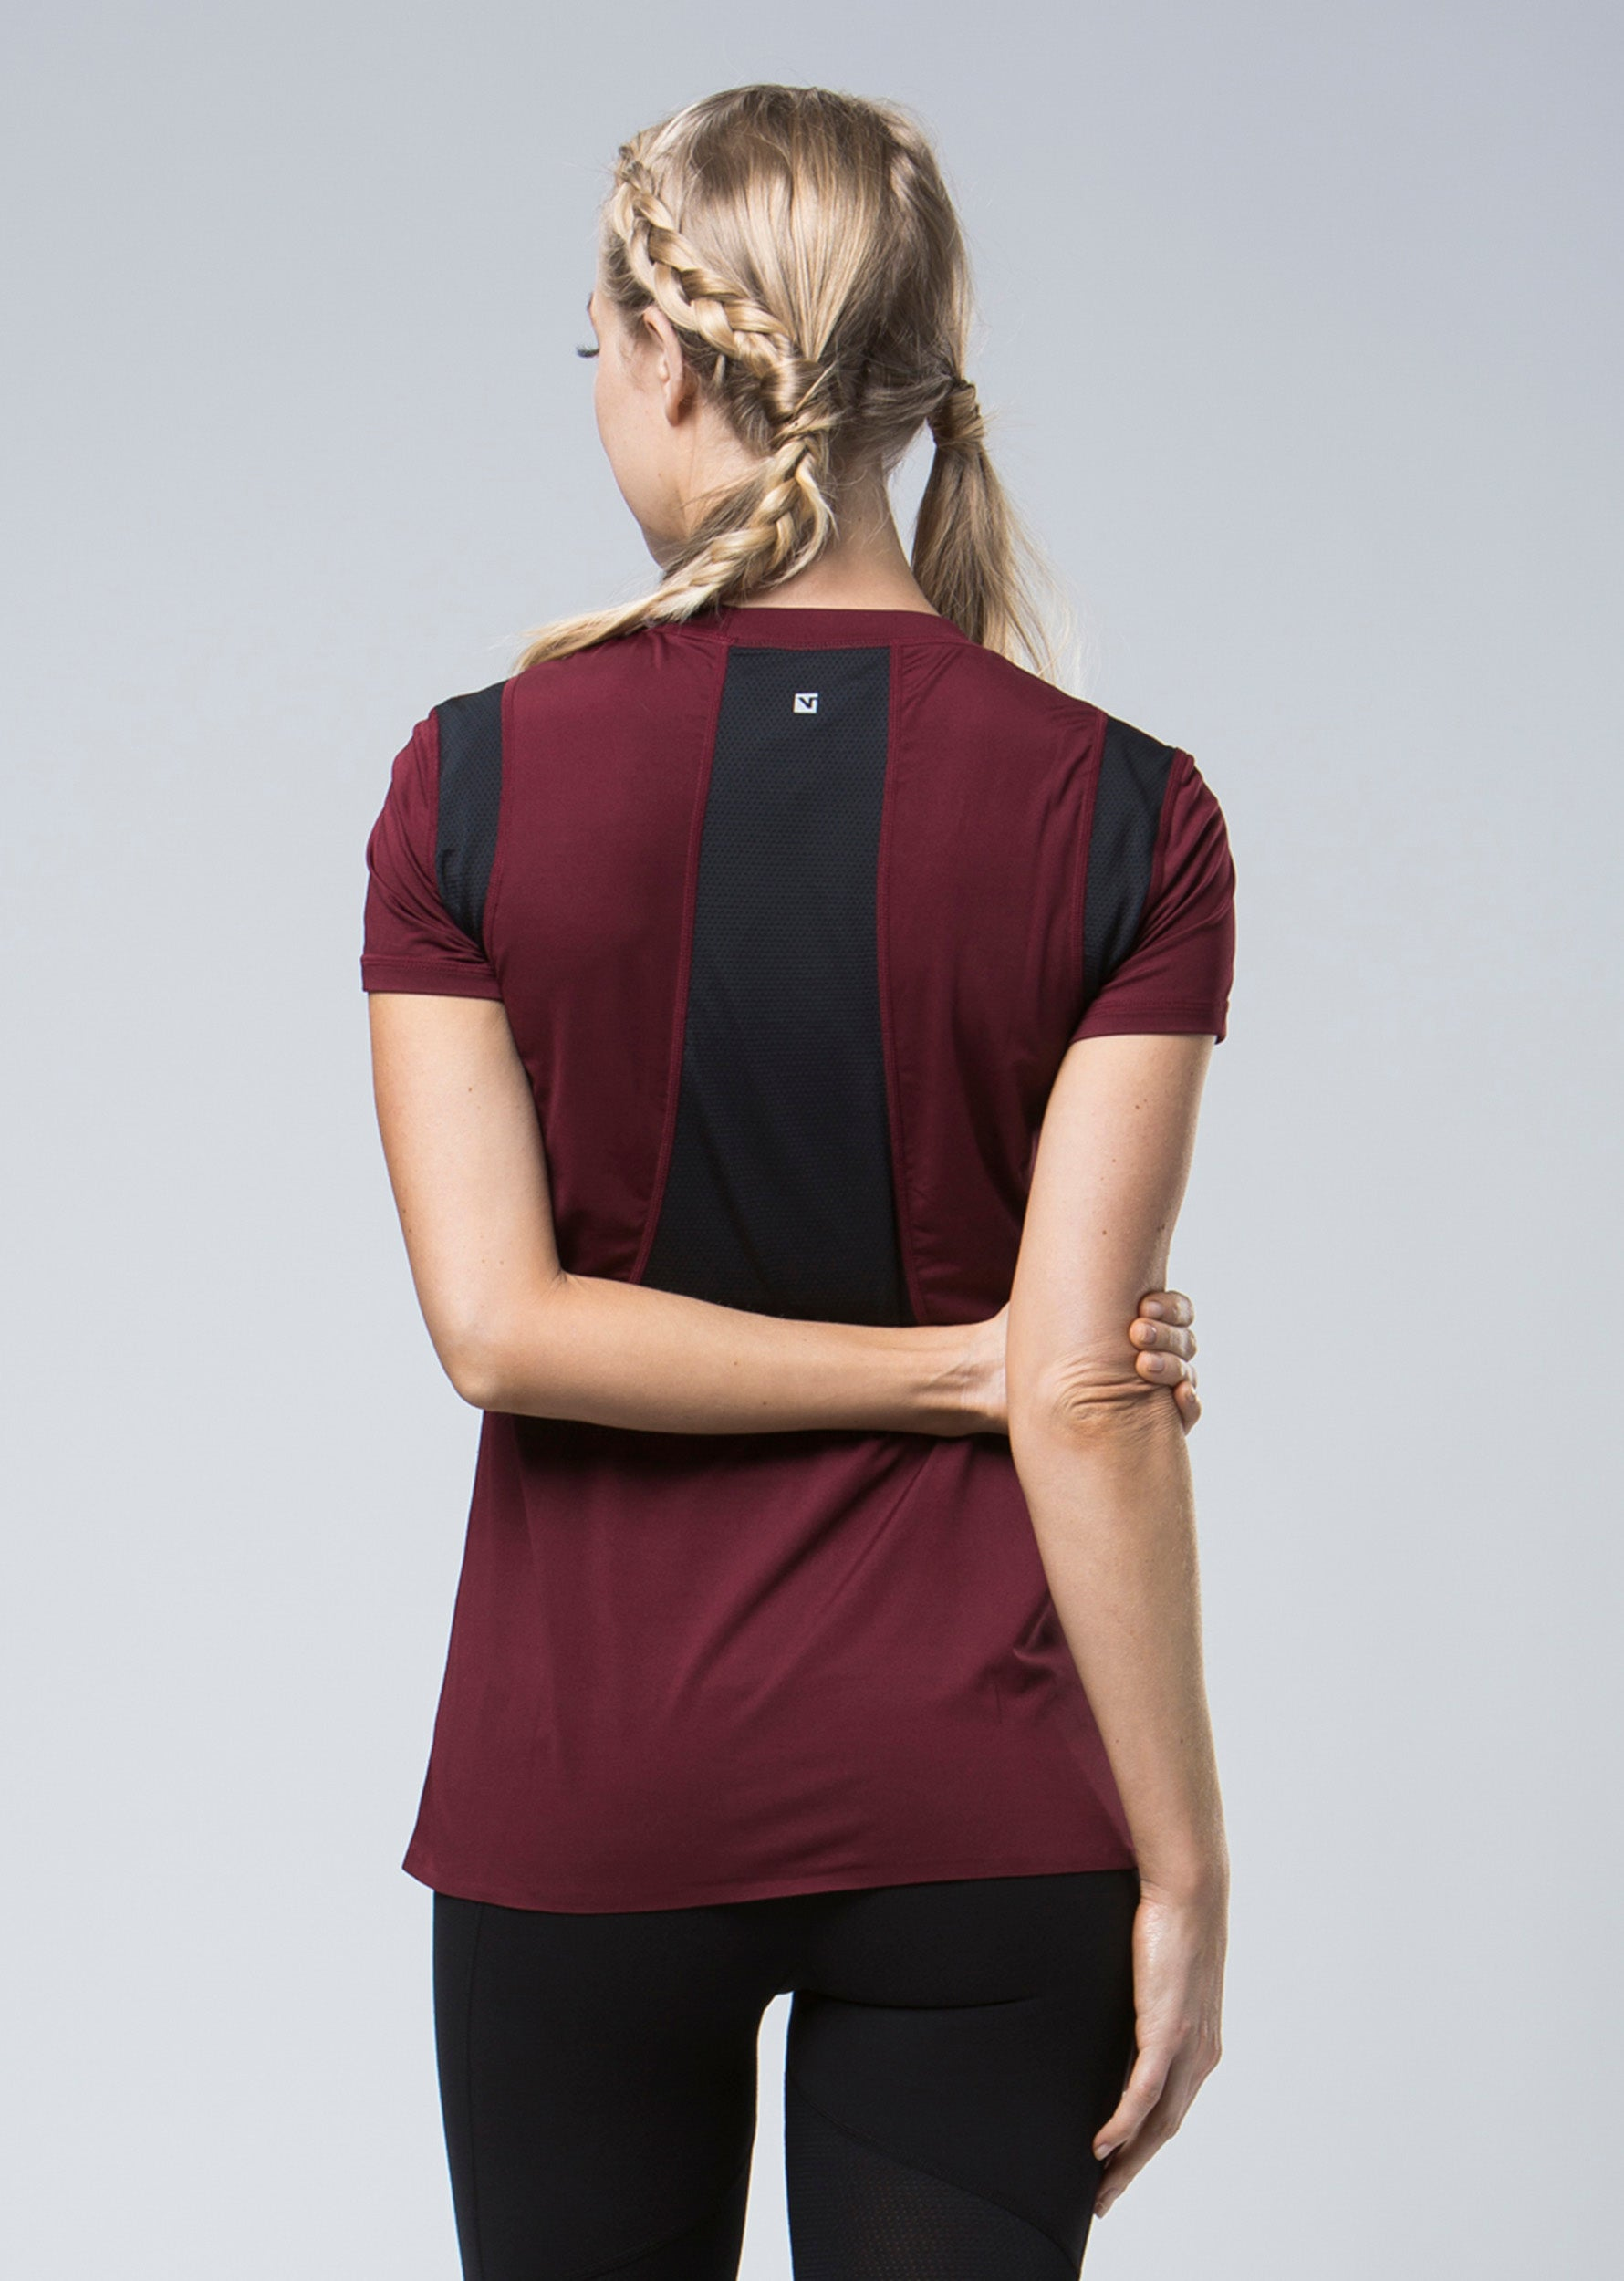 Infinity Technical Tee - Burgundy